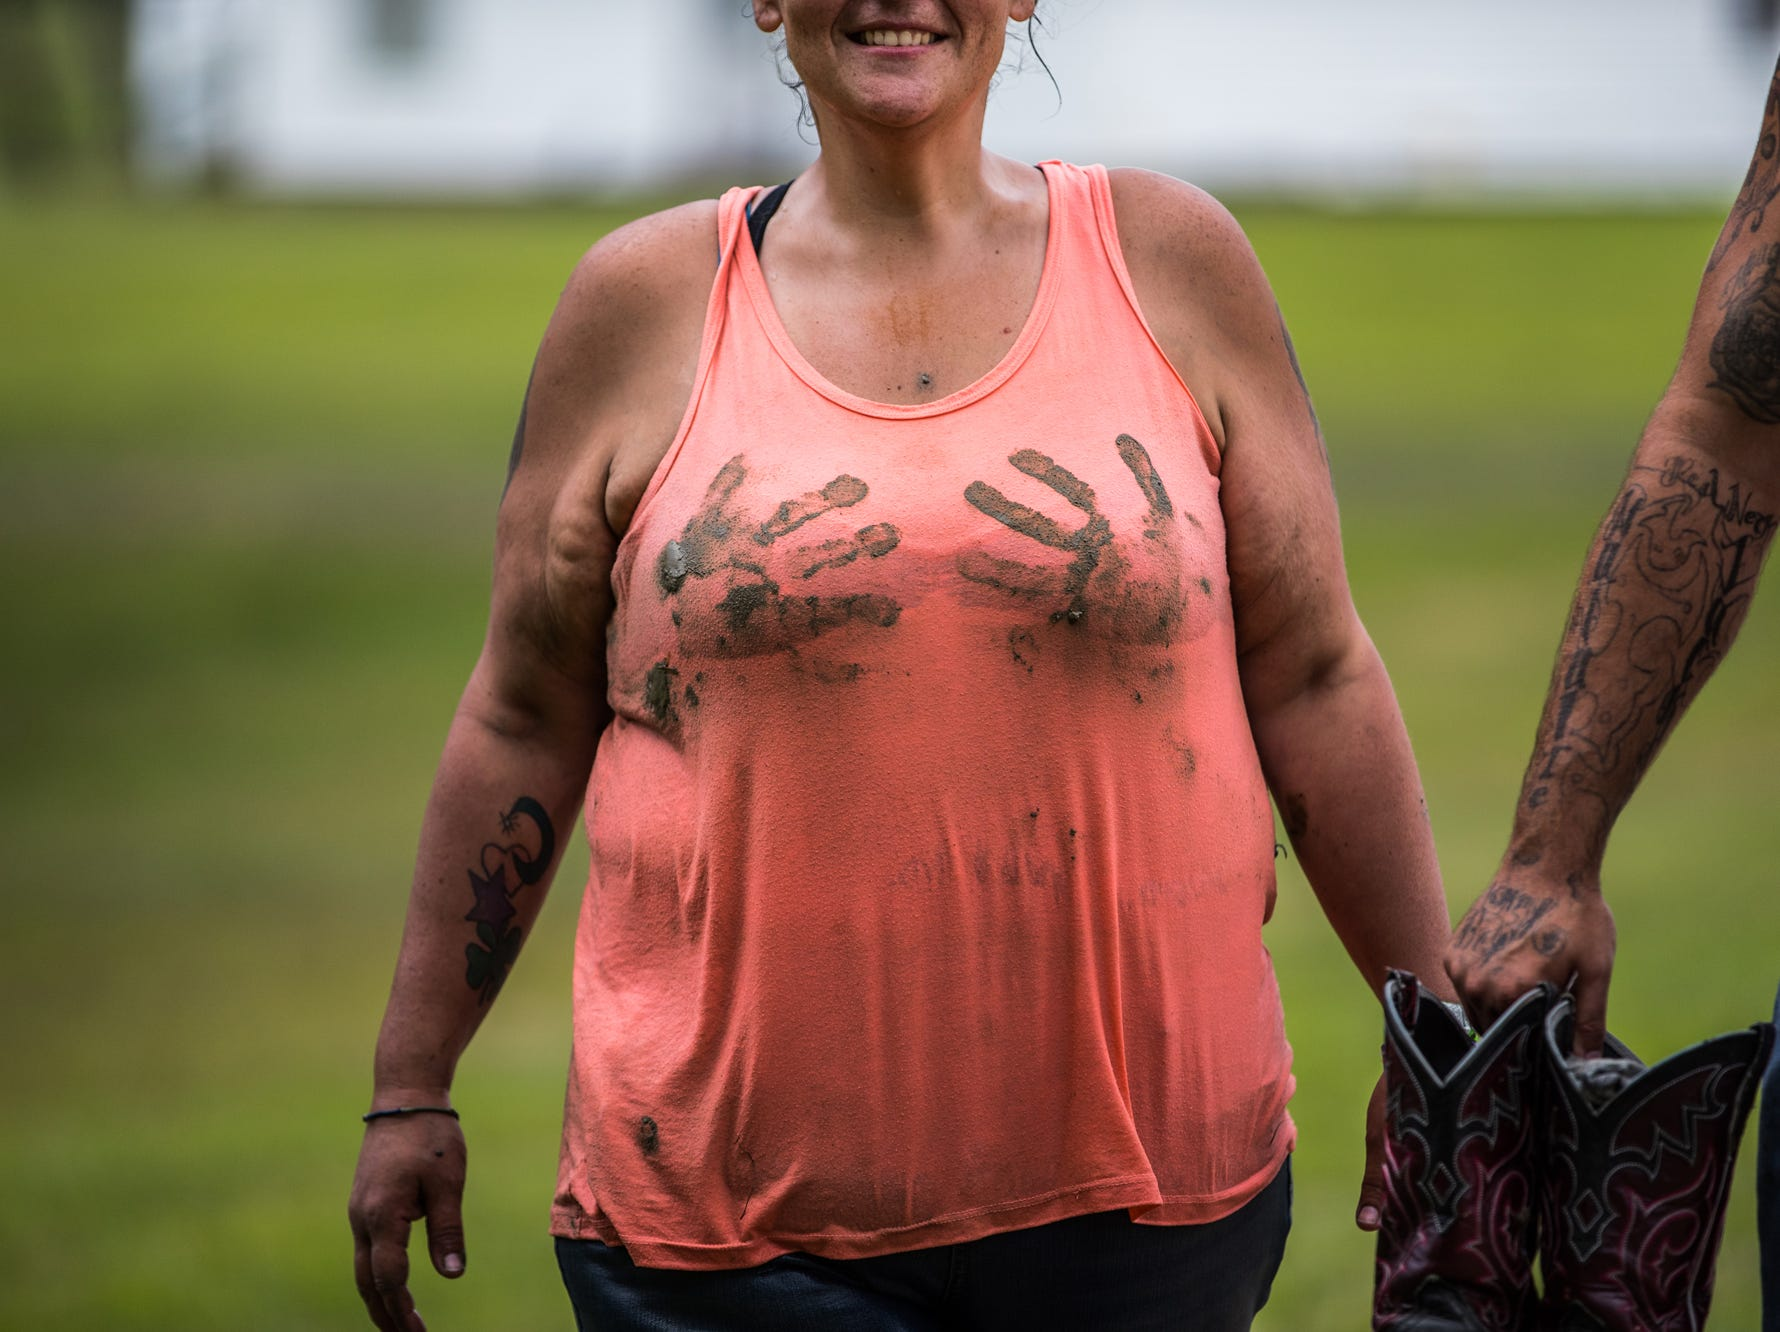 A Redneck Rave participant makes her way along a gravel road near the mud pits at BlackSwan Mudpit in Medora, Ind., on Friday, July 20, 2018.